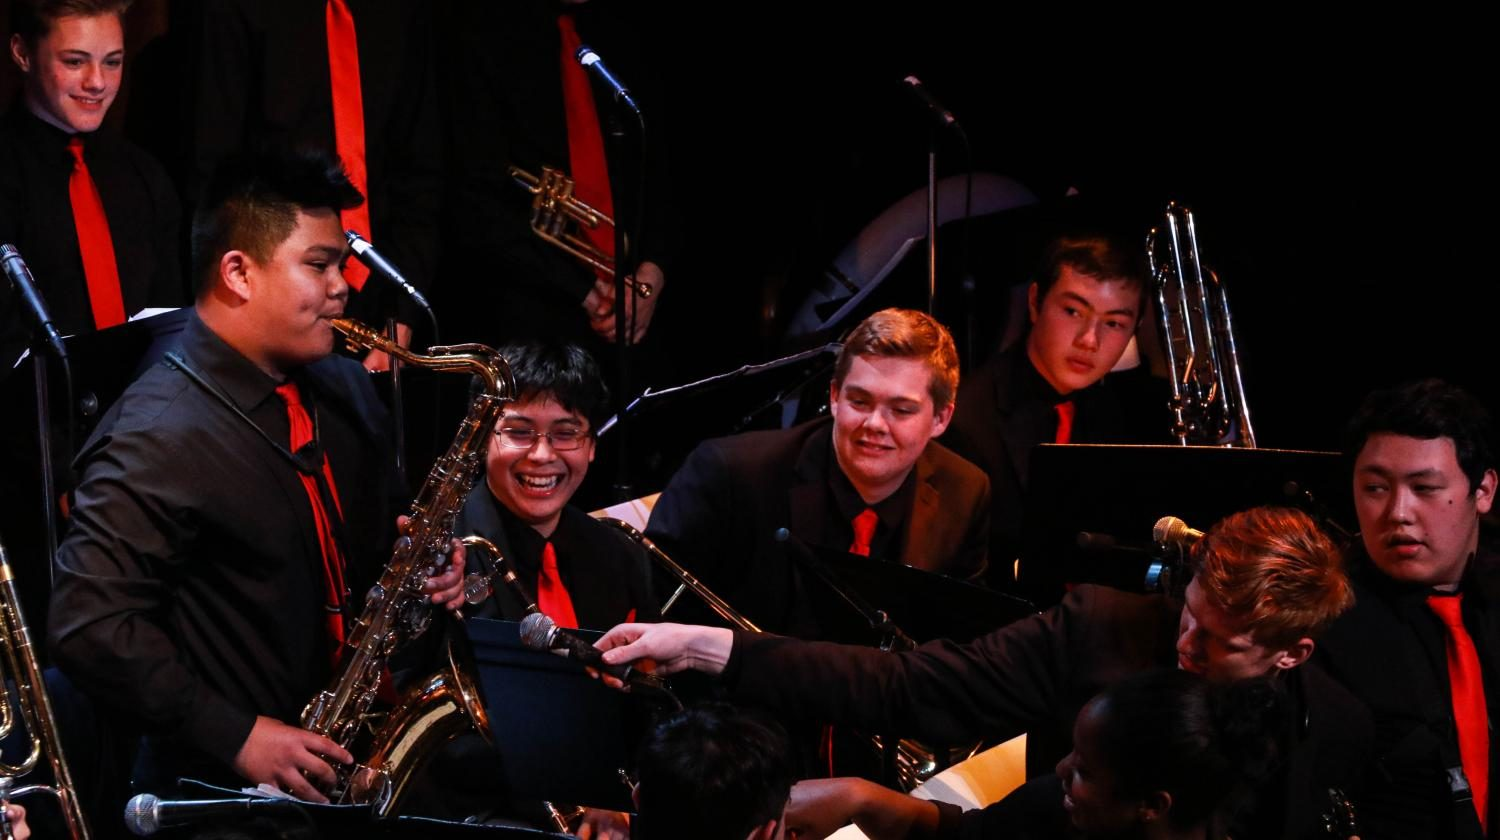 Senior Andrew Sumabat picks up his third instrument of the night to wow the crowd with another energetic solo with the help of mic-holder Max Knibbe.